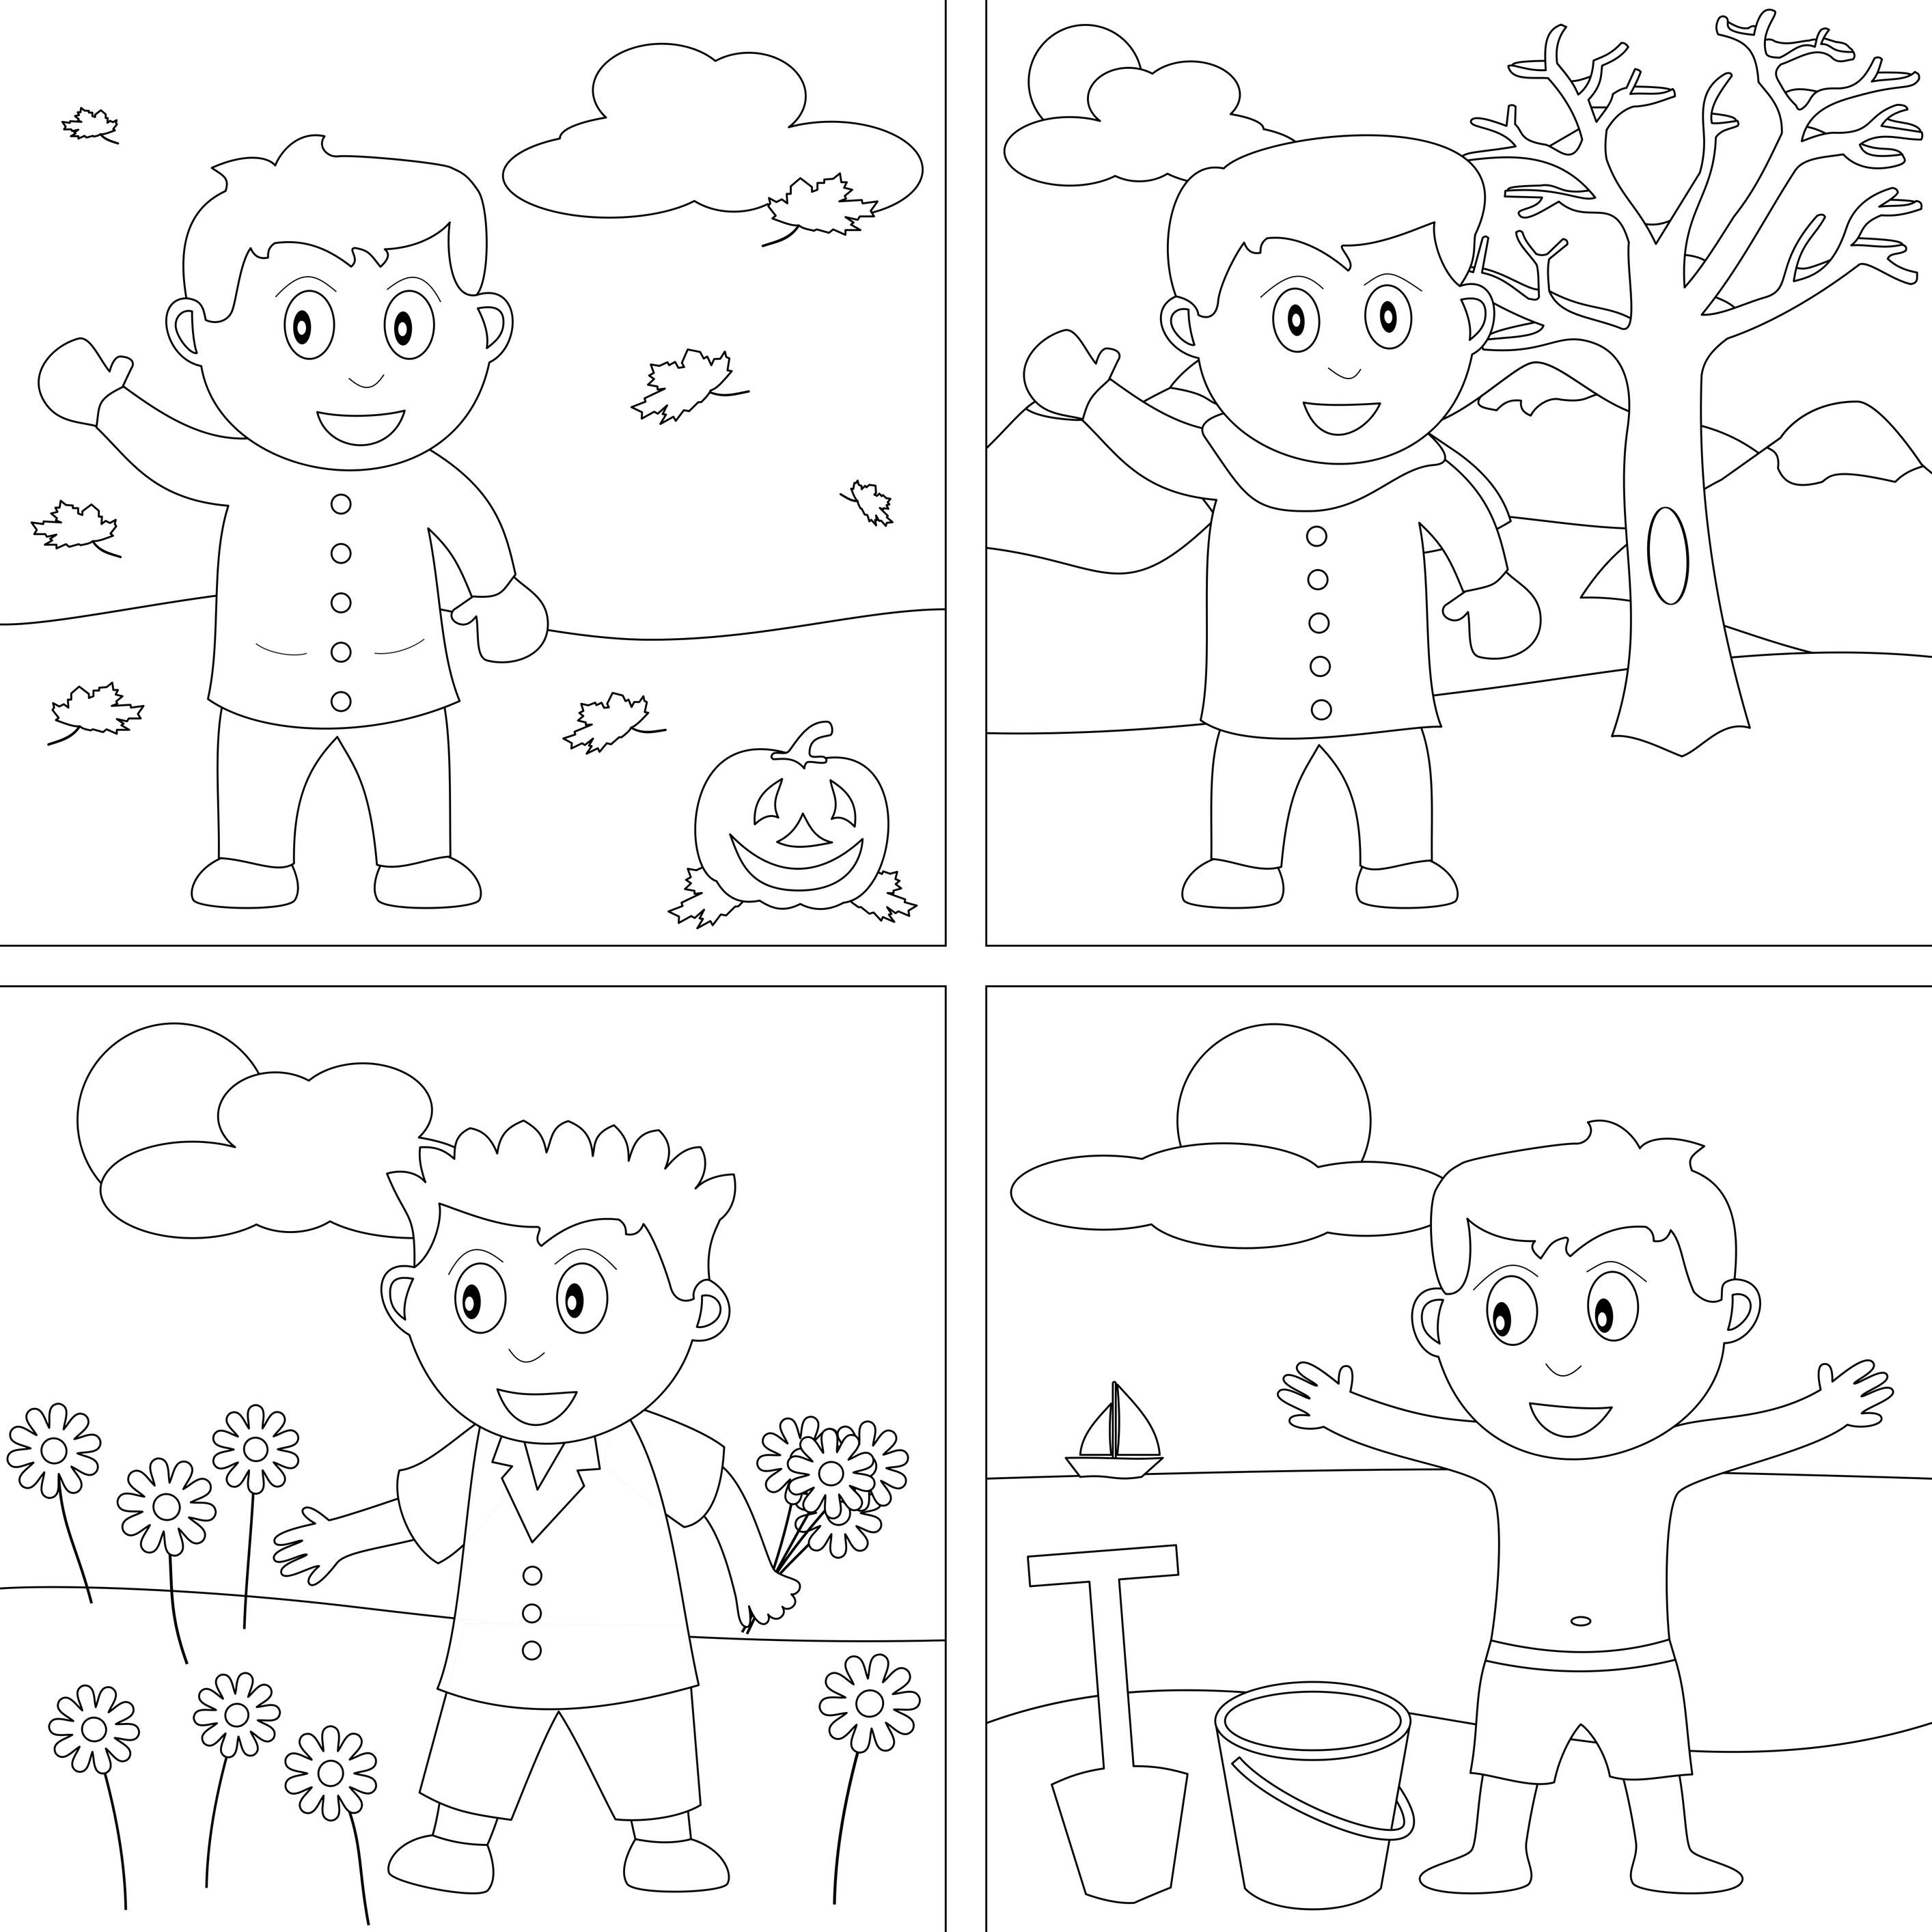 worksheet Seasons Worksheet 17 best images about seasons on pinterest spring preschool and of the year